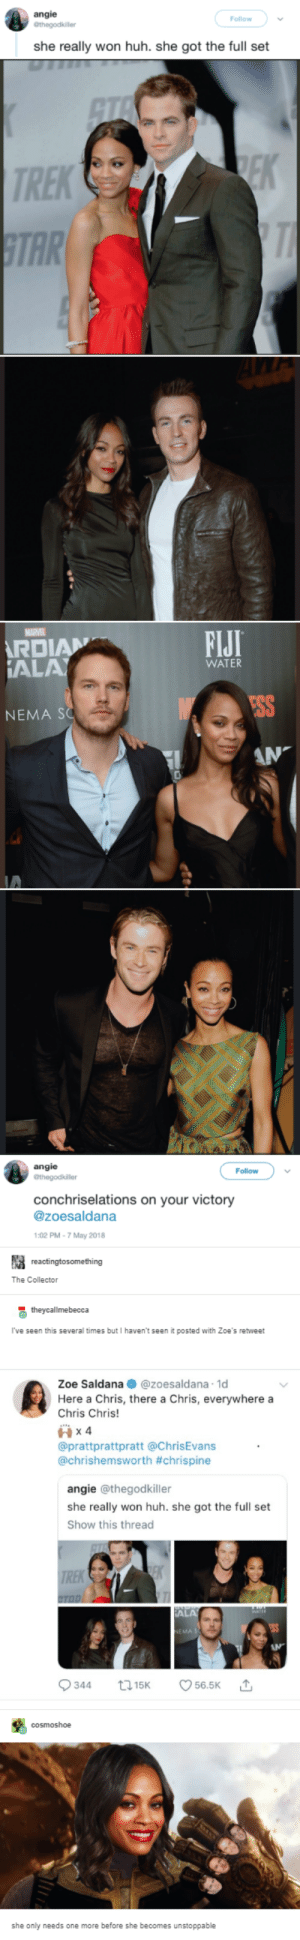 Actually two more: angie  Follow  she really won huh. she got the full set  TREK  TAR  FIJI  DIAN  AL  WATER  ESS  NEMA SO  angie  Follow  conchriselations on your victory  @zoesaldana  02 PM-7 May 2018  The Colector  I've seen this several times but I haven't seen it posted with Zoe's retweet  Zoe Saldana @zoesaldana 1d  Here a Chris, there a Chris, everywhere a  Chris Chris  @prattprattpratt@ChrisEvans  @chrishemsworth #chrispine  angie @thegodkiller  she really won huh. she got the full set  Show this thread  she only needs one more before she becomes unstoppable Actually two more